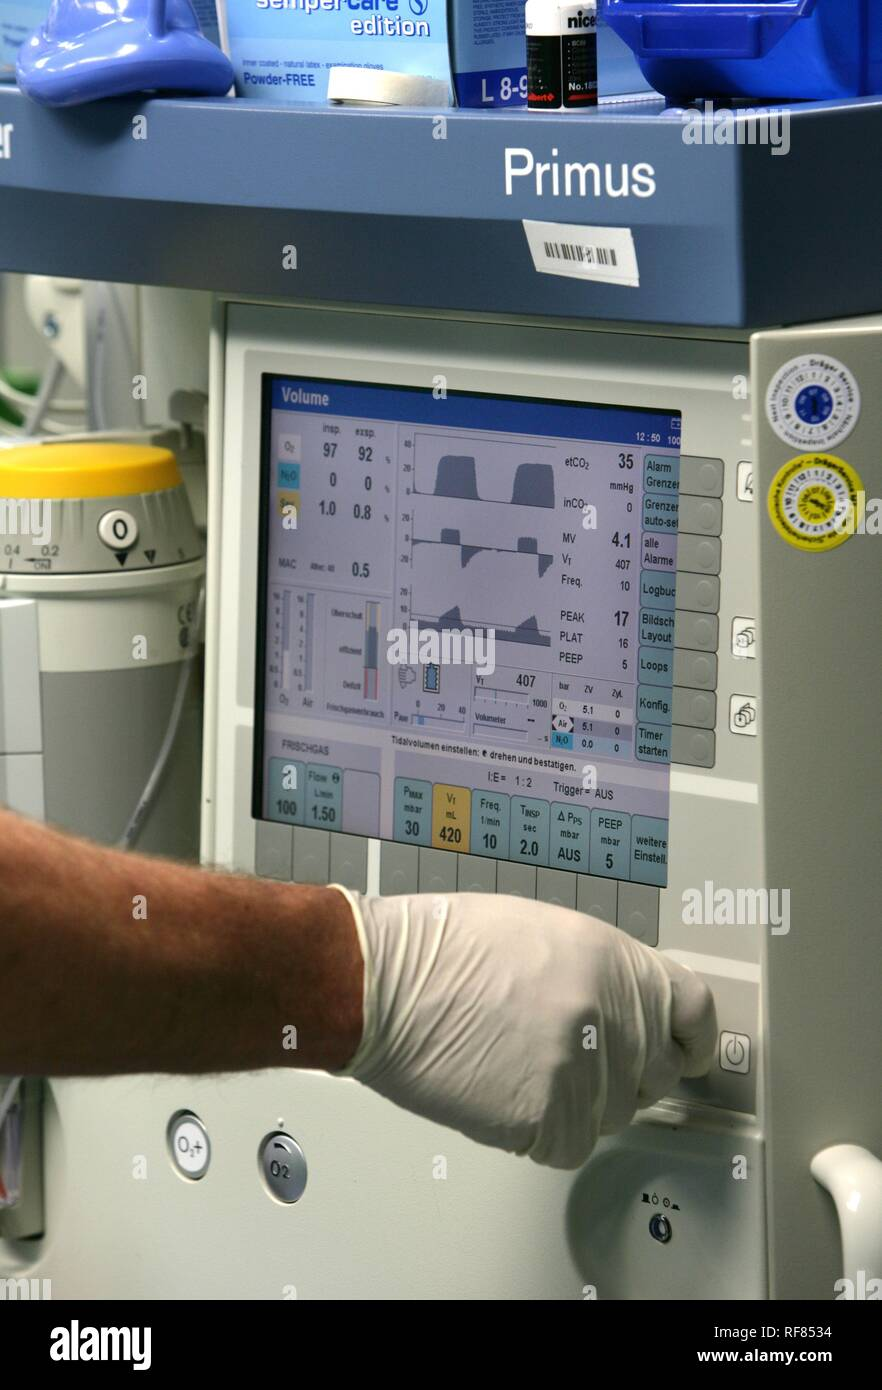 Anaesthetic machine, Germany - Stock Image